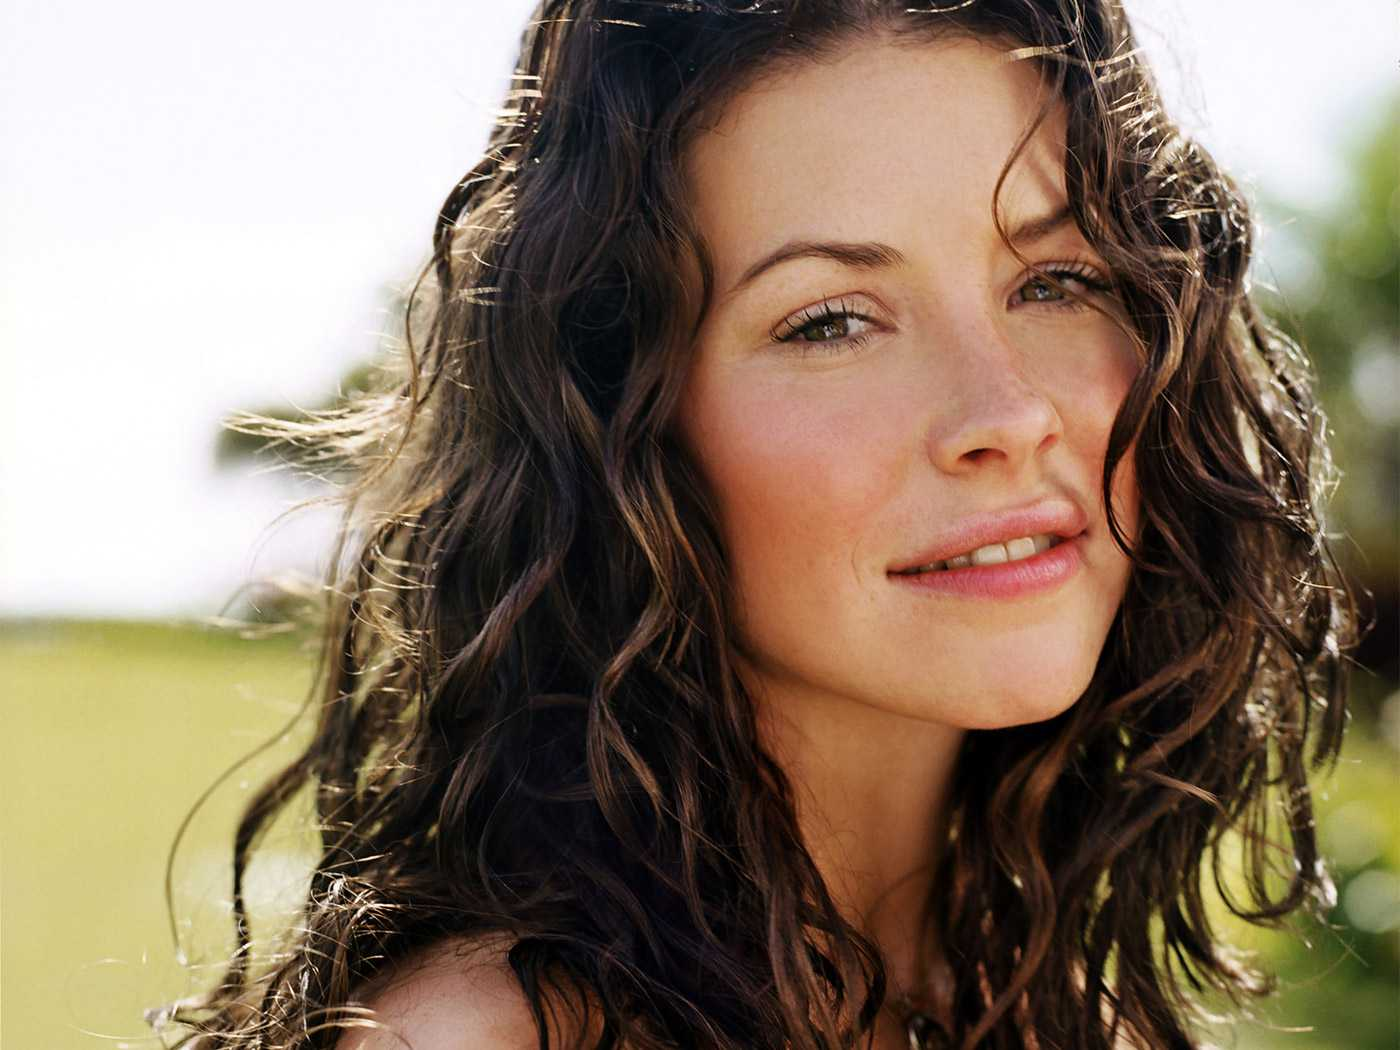 Evangeline Lilly Opens Up About Her Struggle With Depression